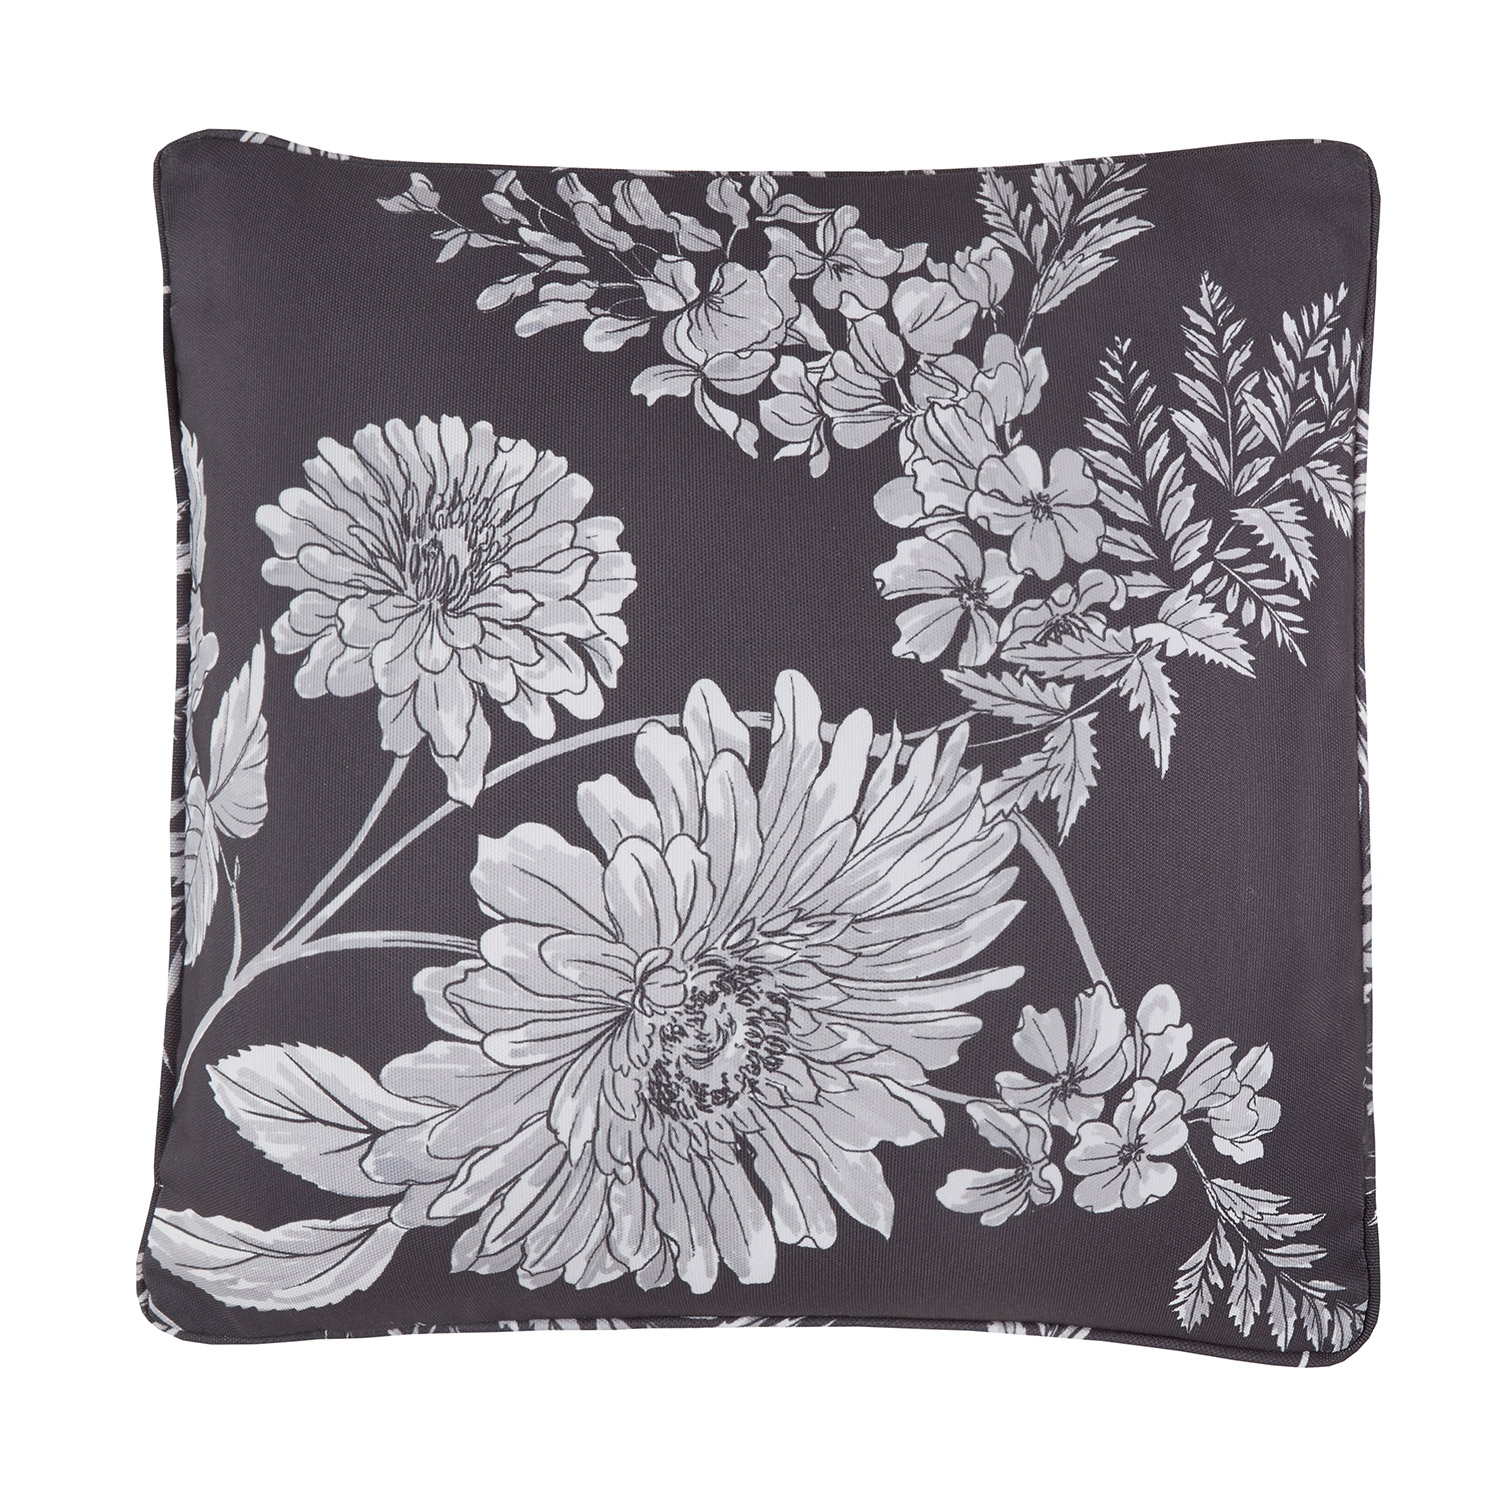 Adele White Floral Reversible Filled Square Cushion